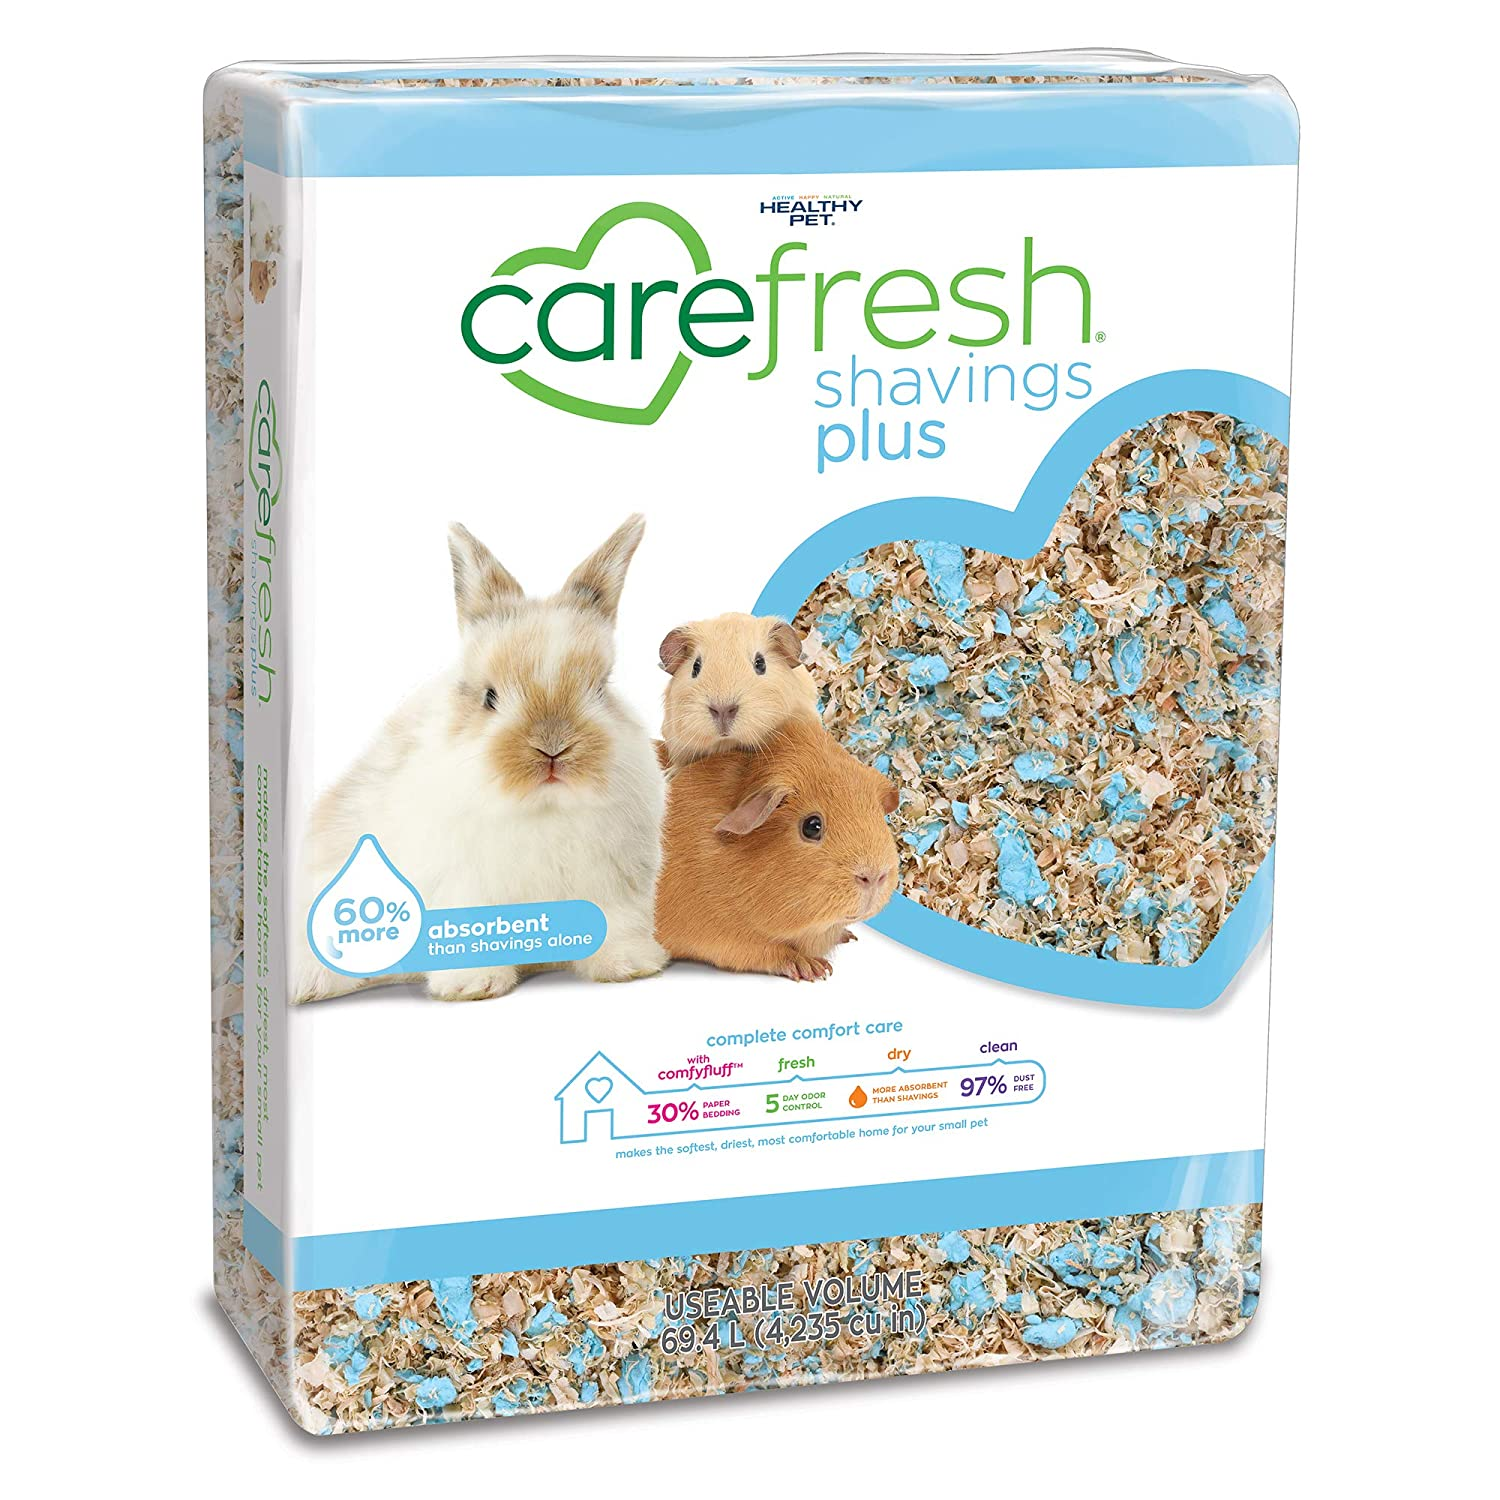 Carefresh Guinea Pig Bedding 3